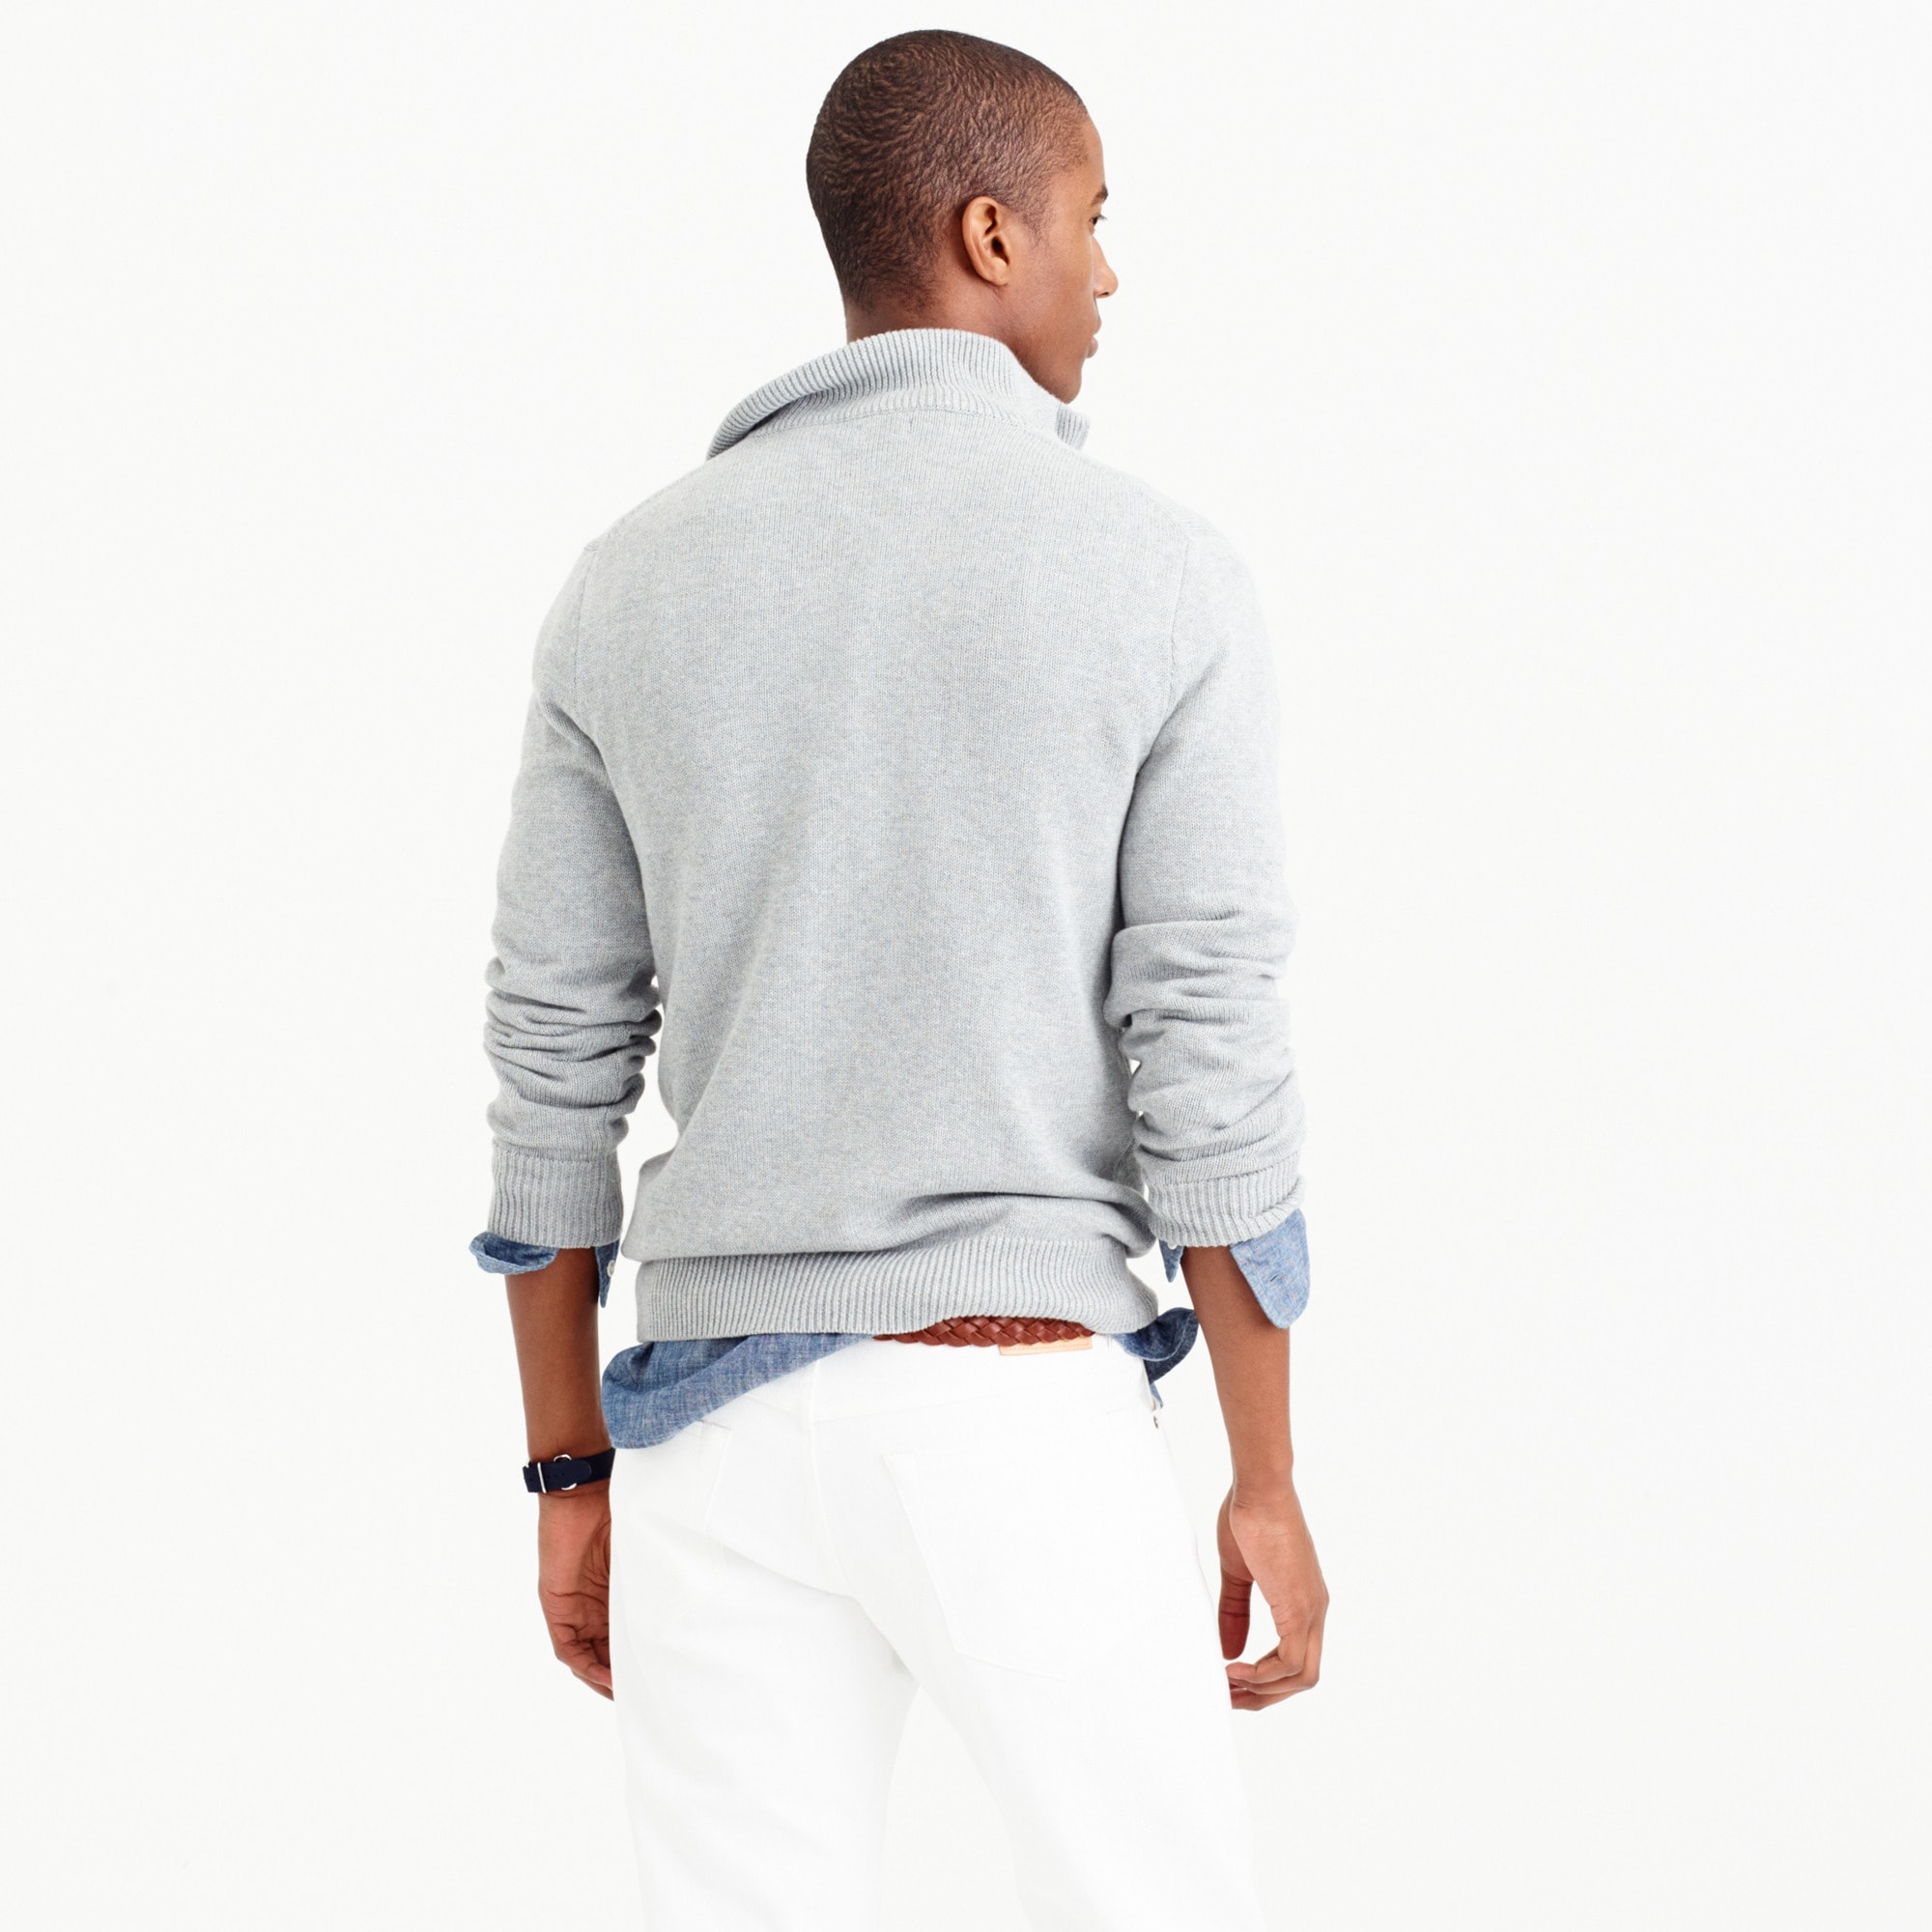 Image 2 for Cotton-cashmere half-zip sweater